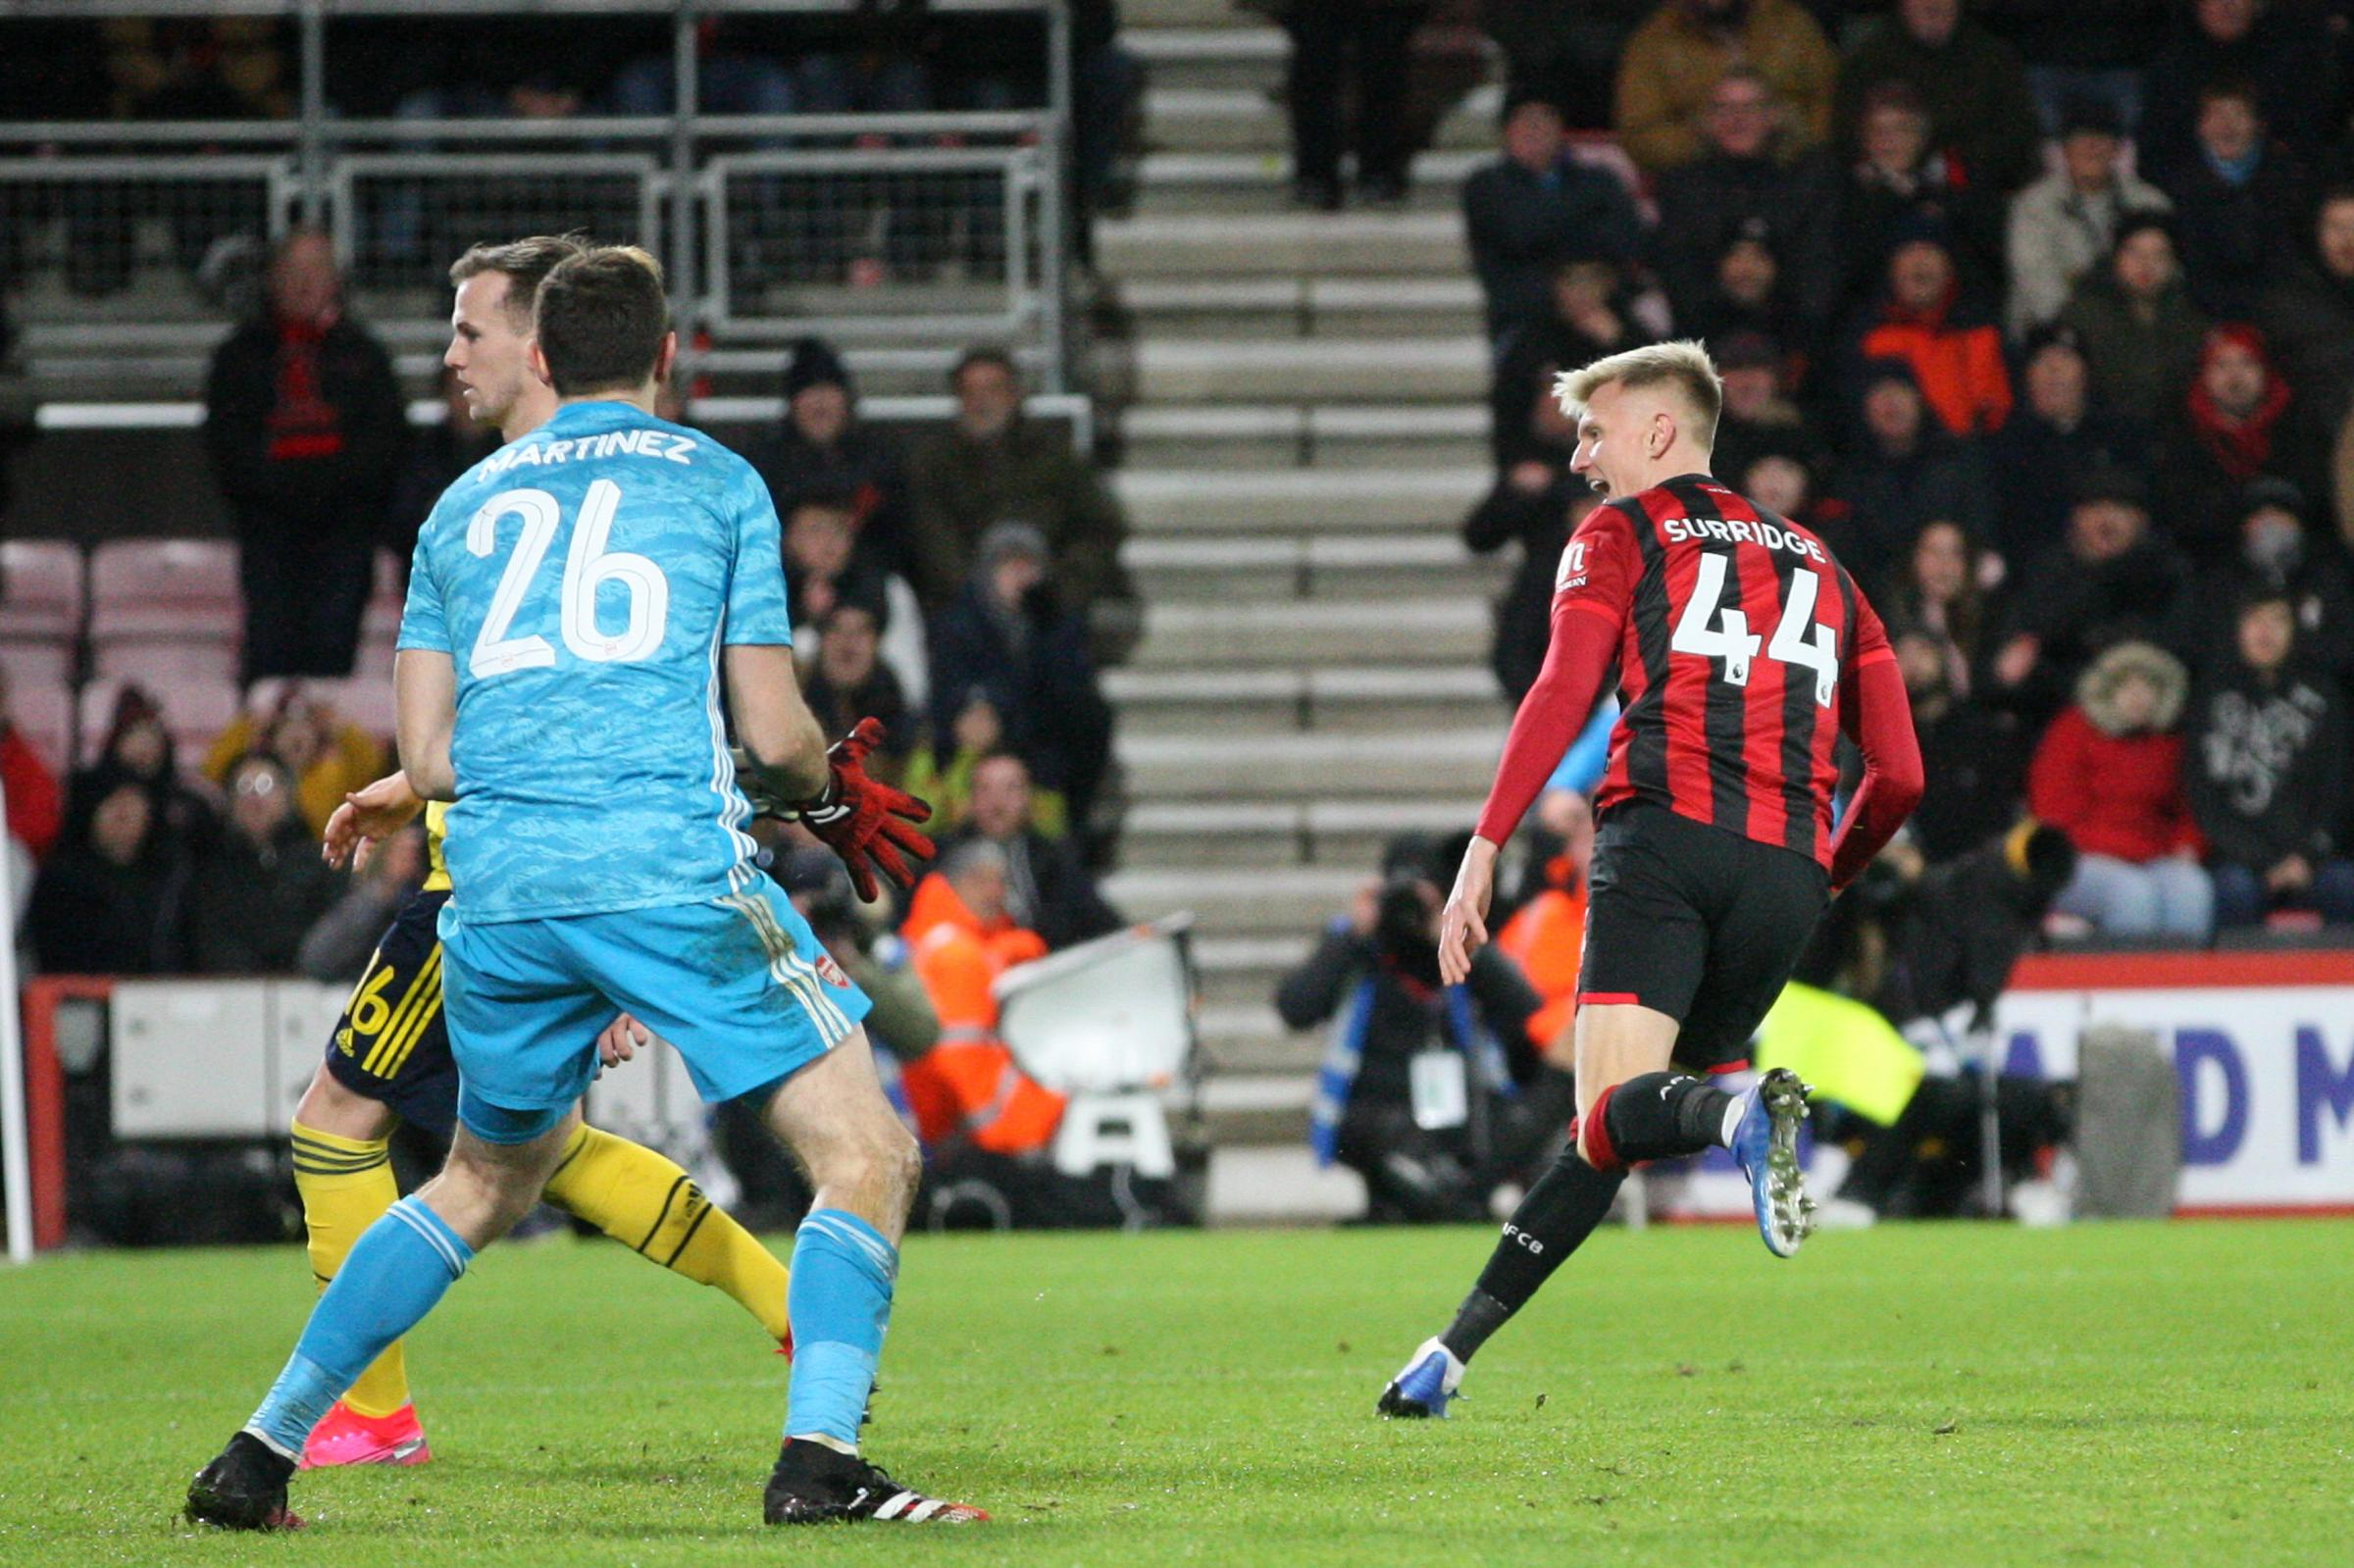 'He's a goalscorer' – Howe says Surridge's FA Cup strike was 'typical' of the rising star frontman